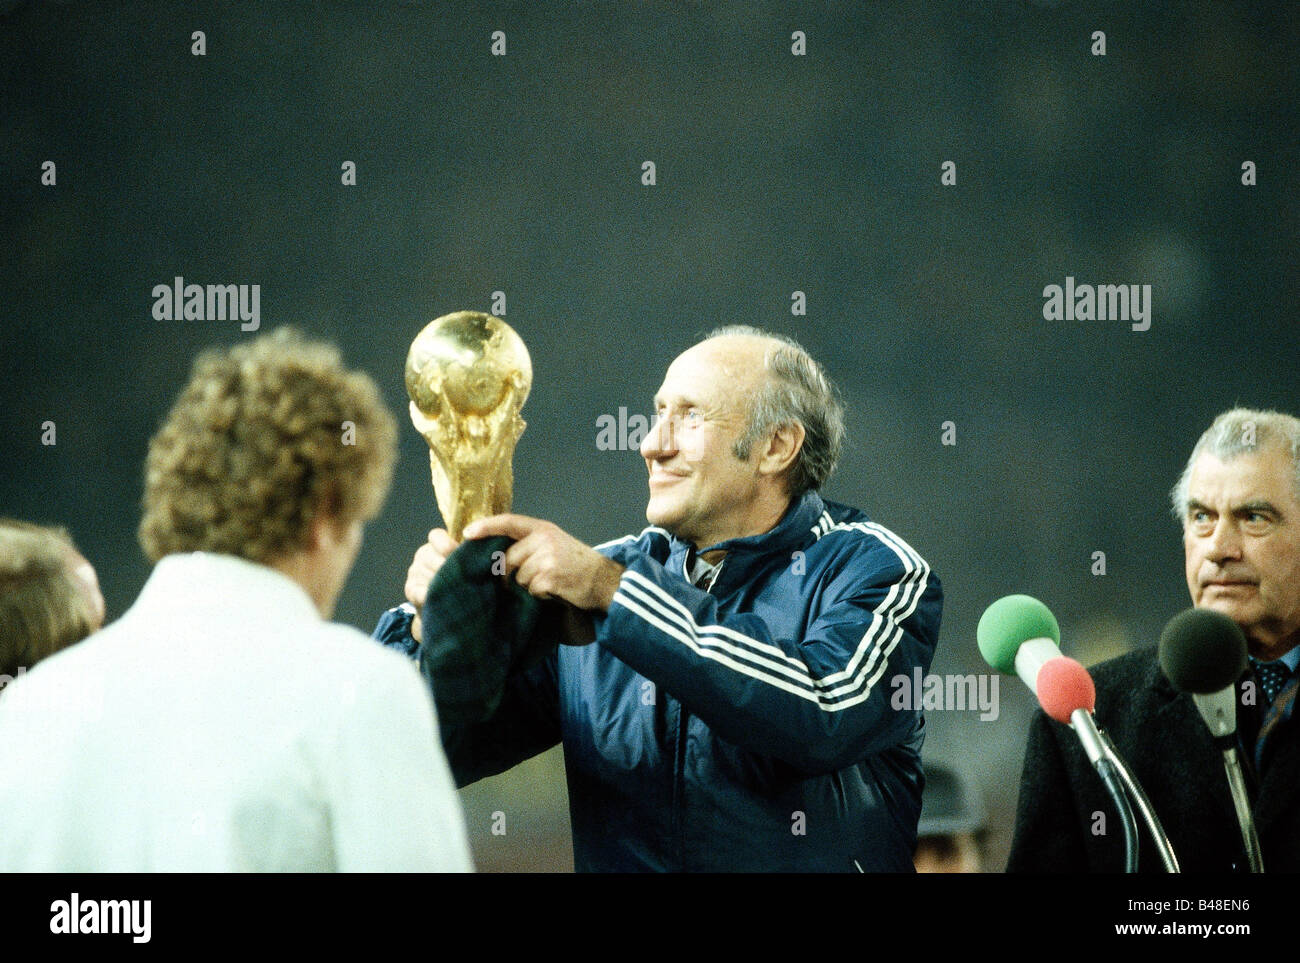 Saying goodbye to sports historically stretching soccer, football, international match Germany against Hungary in - Stock Image